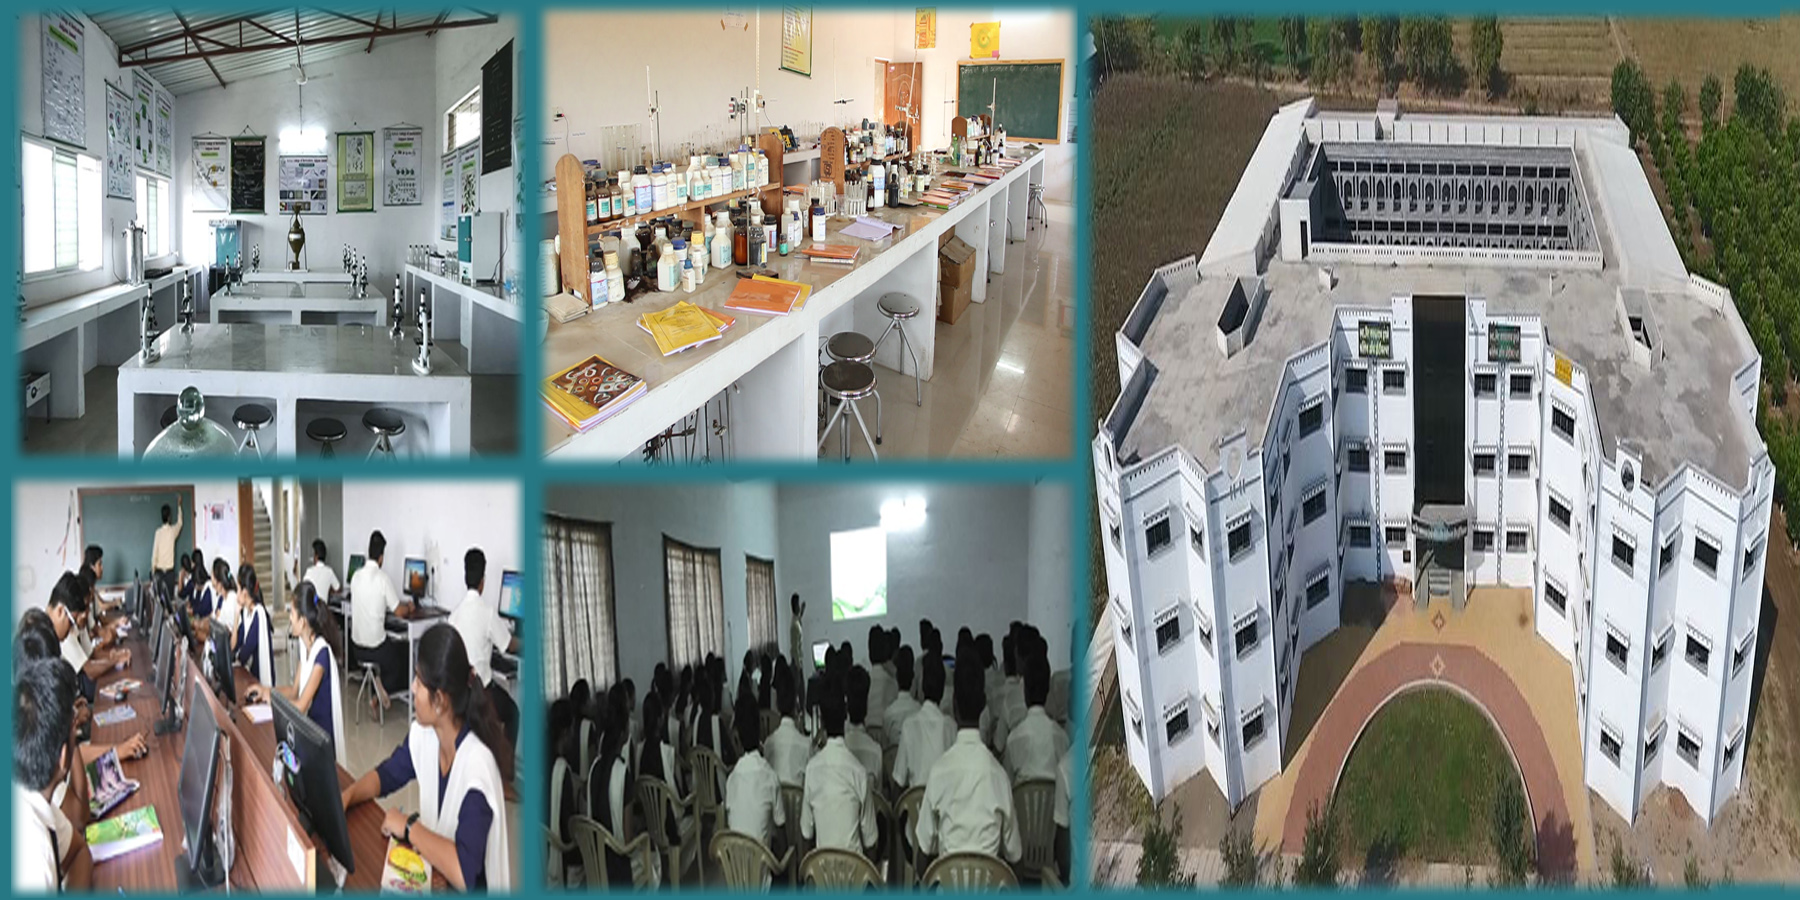 Welcome to S.V.G.I. College of Horticulture